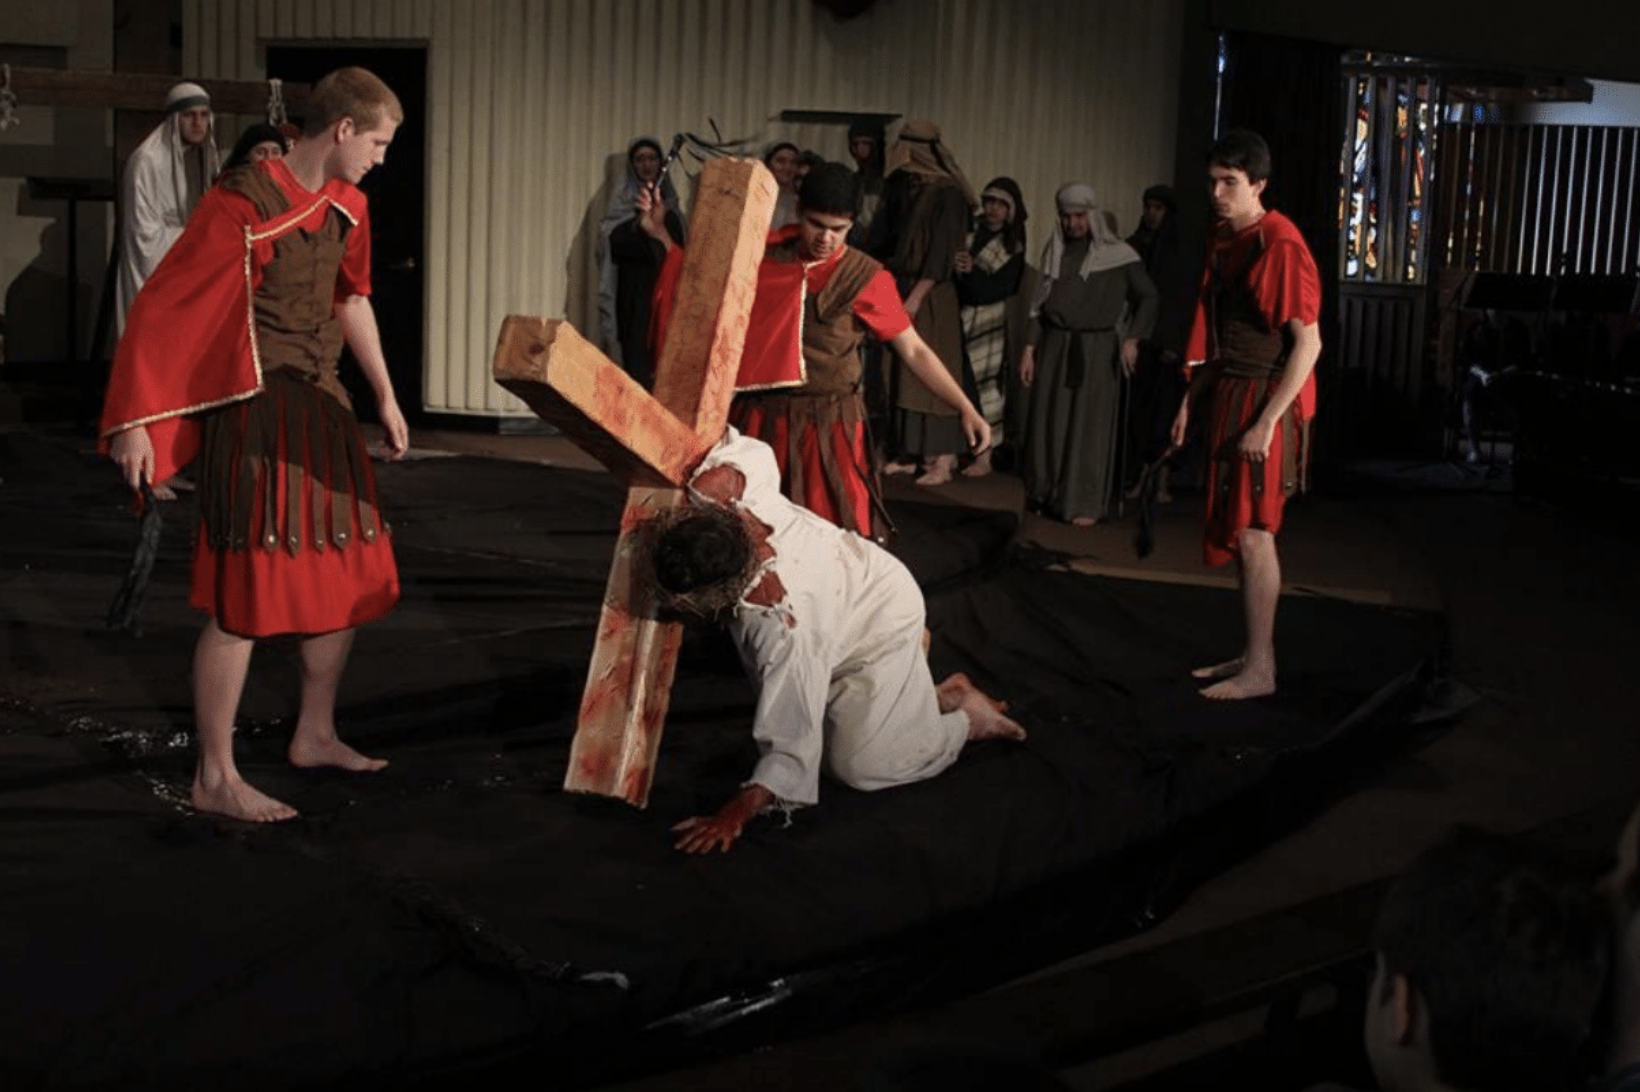 Chapel Ministry prepares to bring the Way of the Cross to